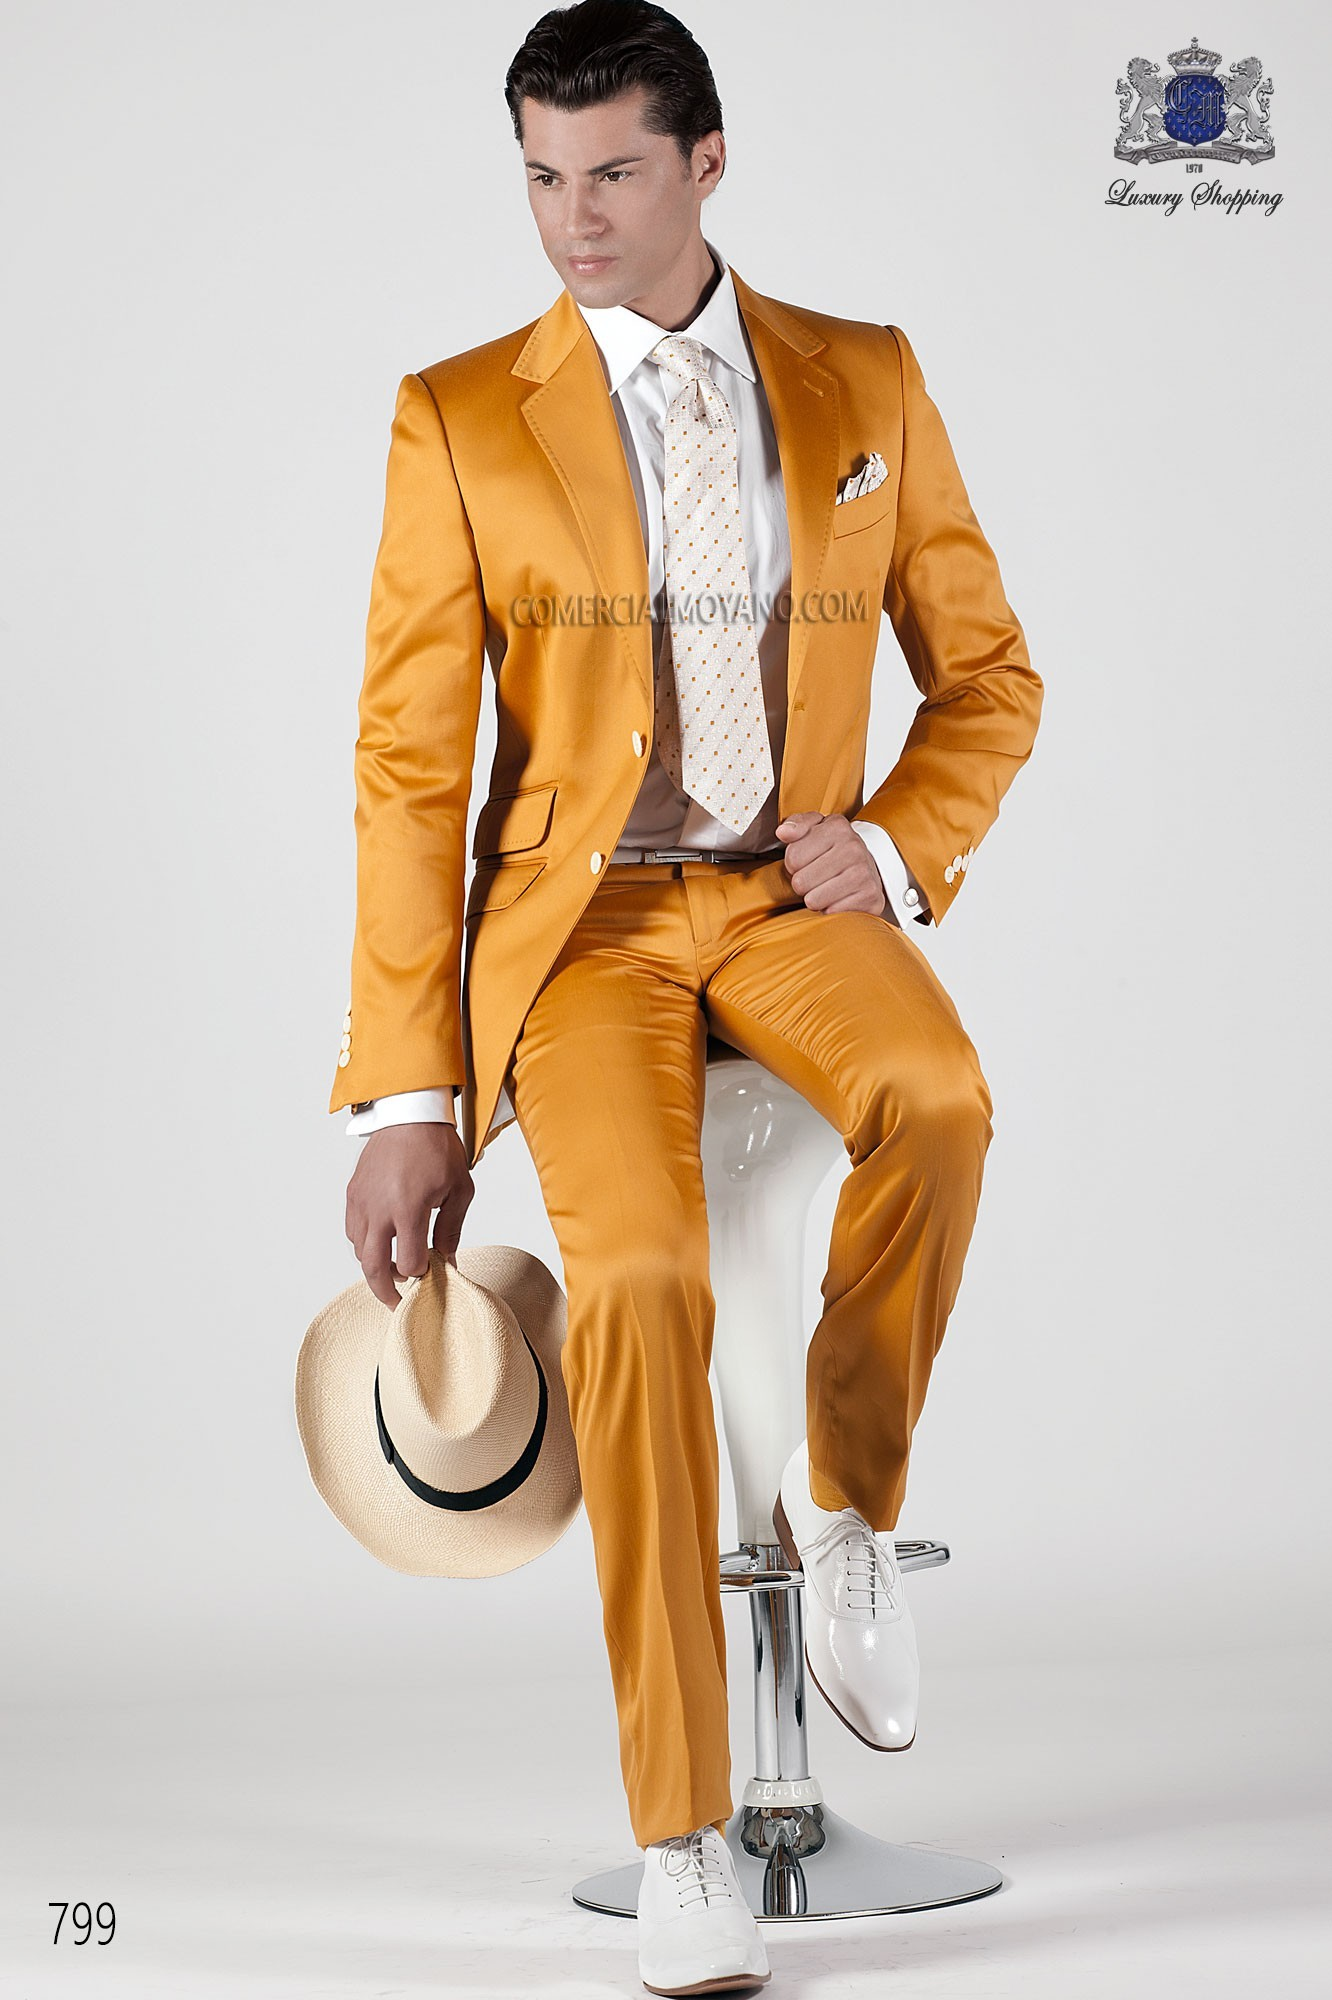 Hipster gold men wedding suit model 799 Ottavio Nuccio Gala